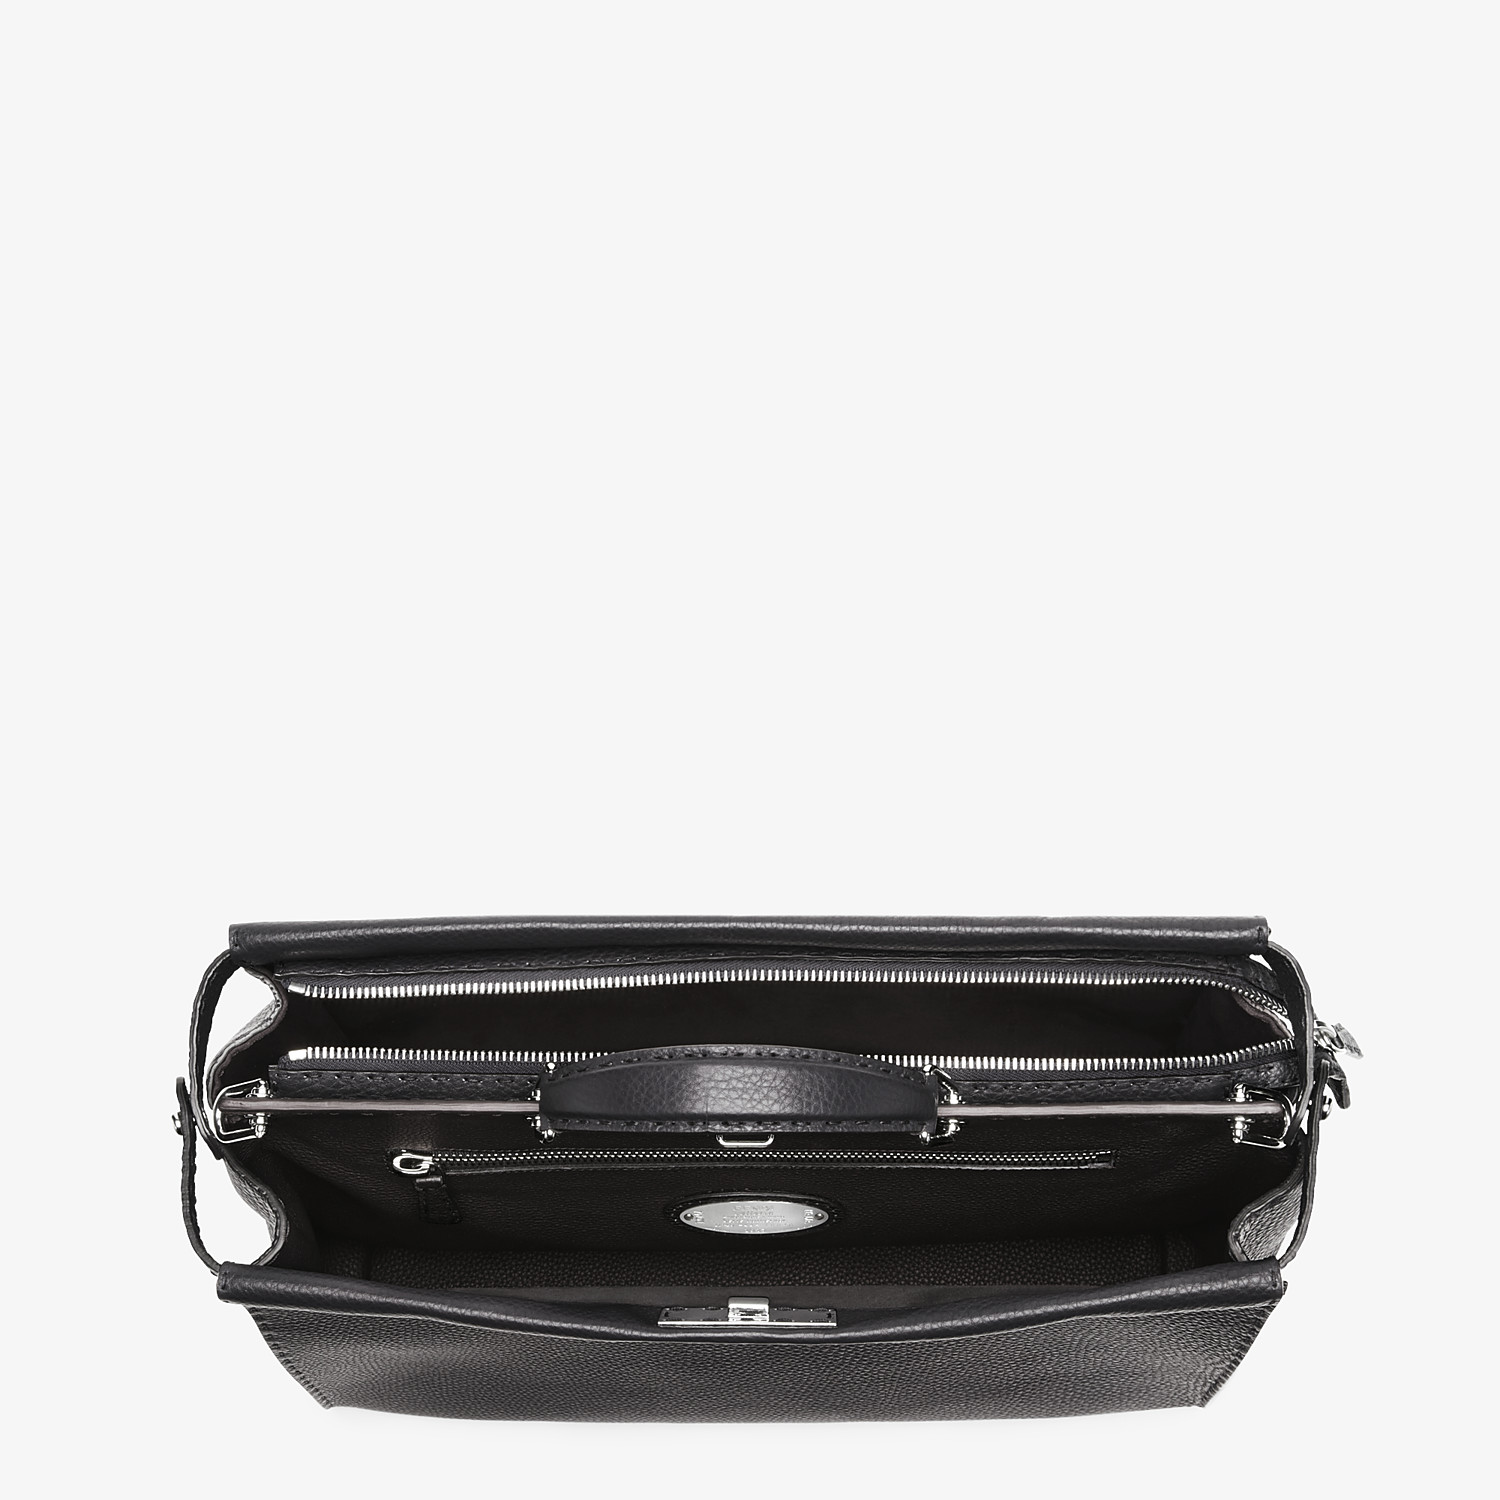 FENDI PEEKABOO ICONIC MEDIUM - Black Selleria bag - view 4 detail